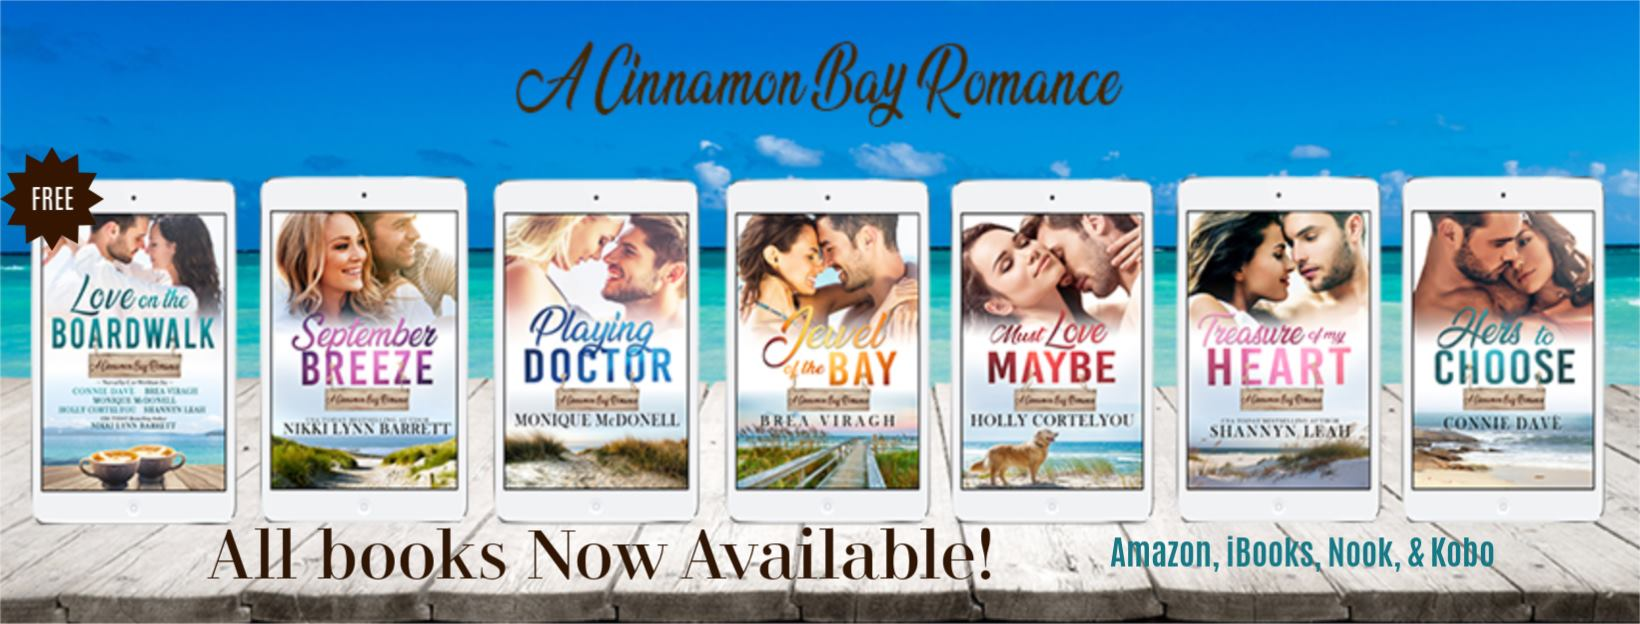 Cinnamon Bay Romance All Books Banner